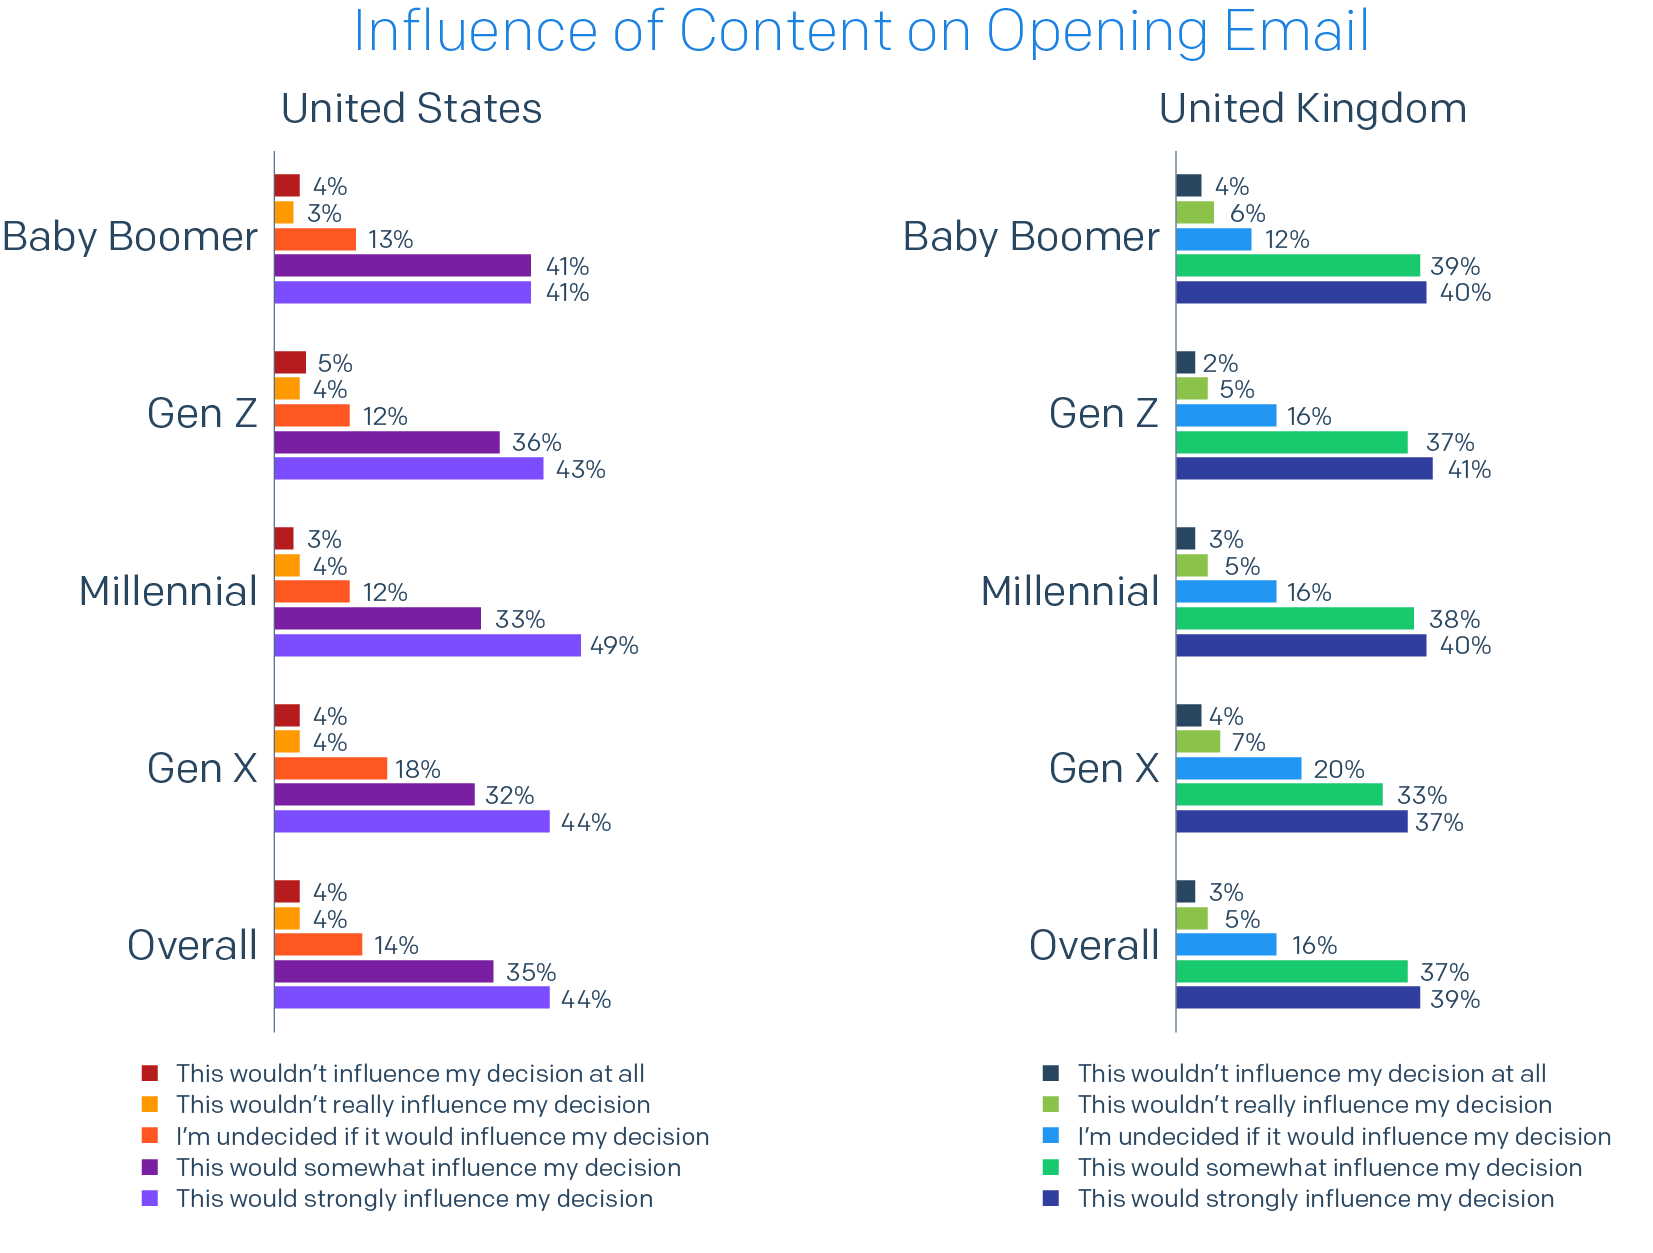 Bar chart of country split of Influence of Content on Opening Email